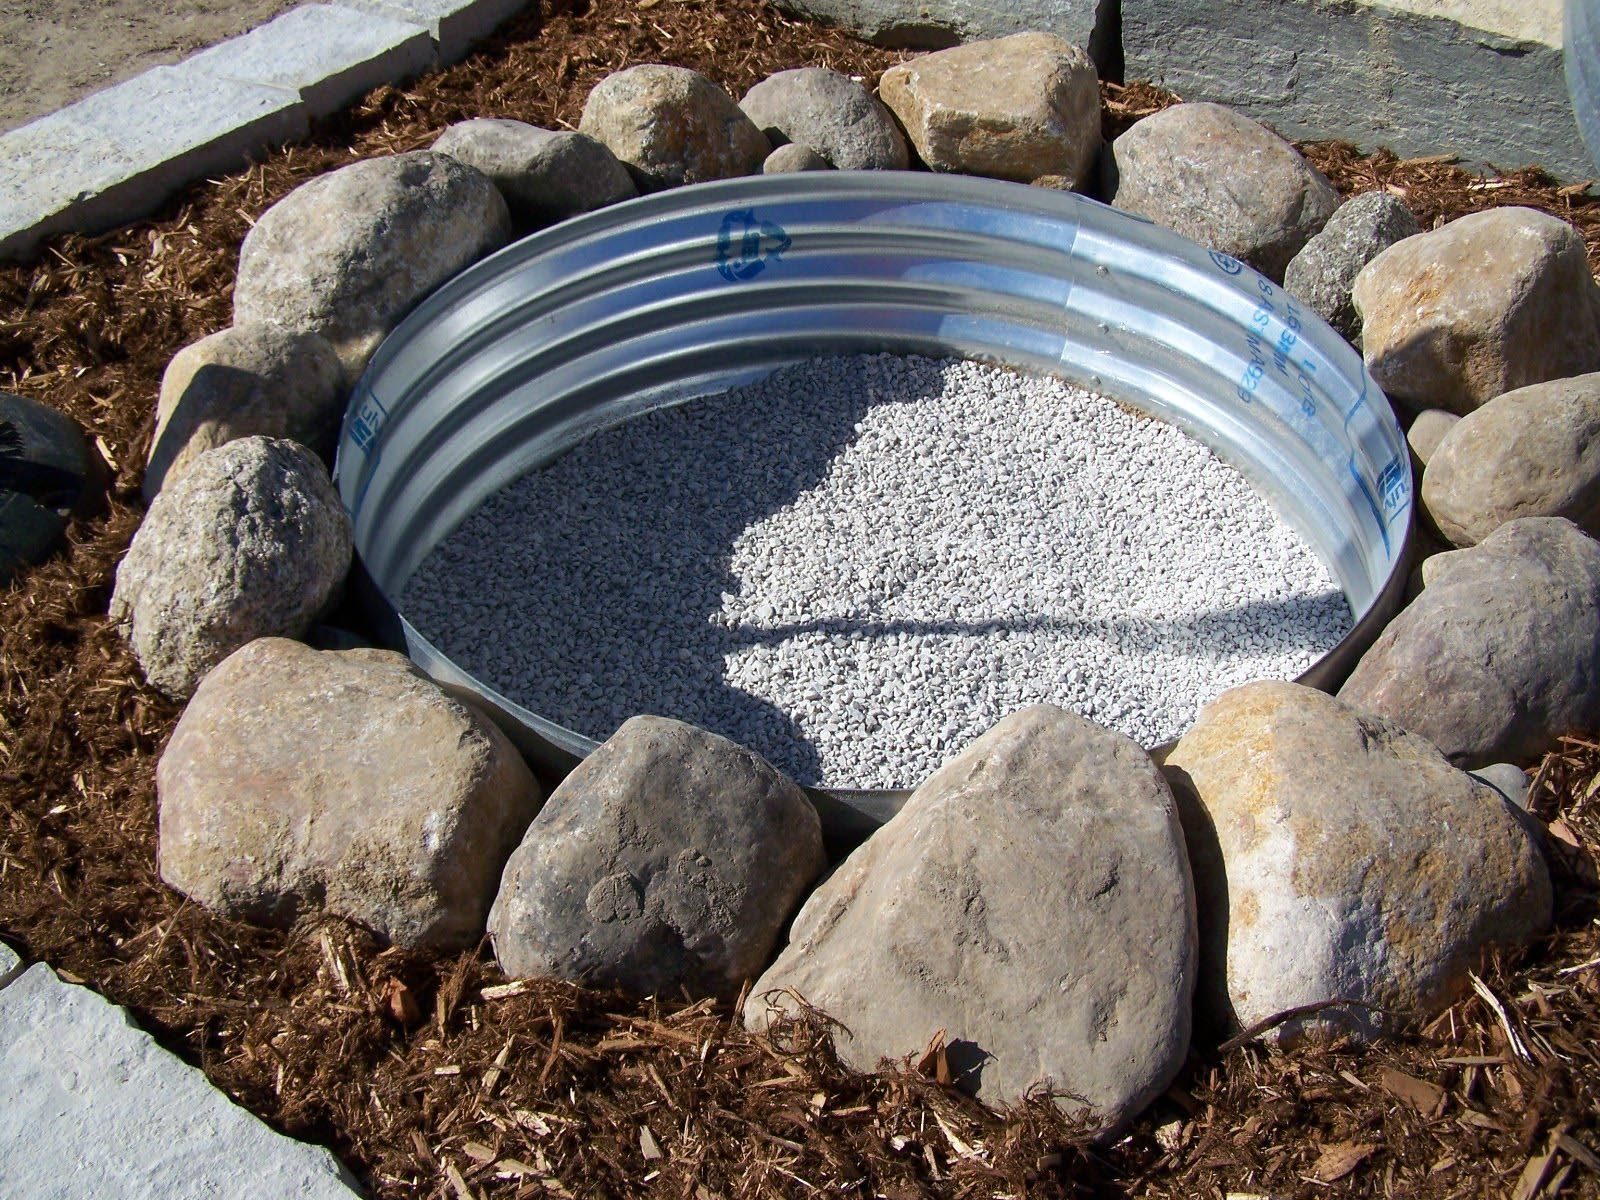 How to build a fire pit: 5 DIY fire pit projects | HireRush Blog #diyfirepit